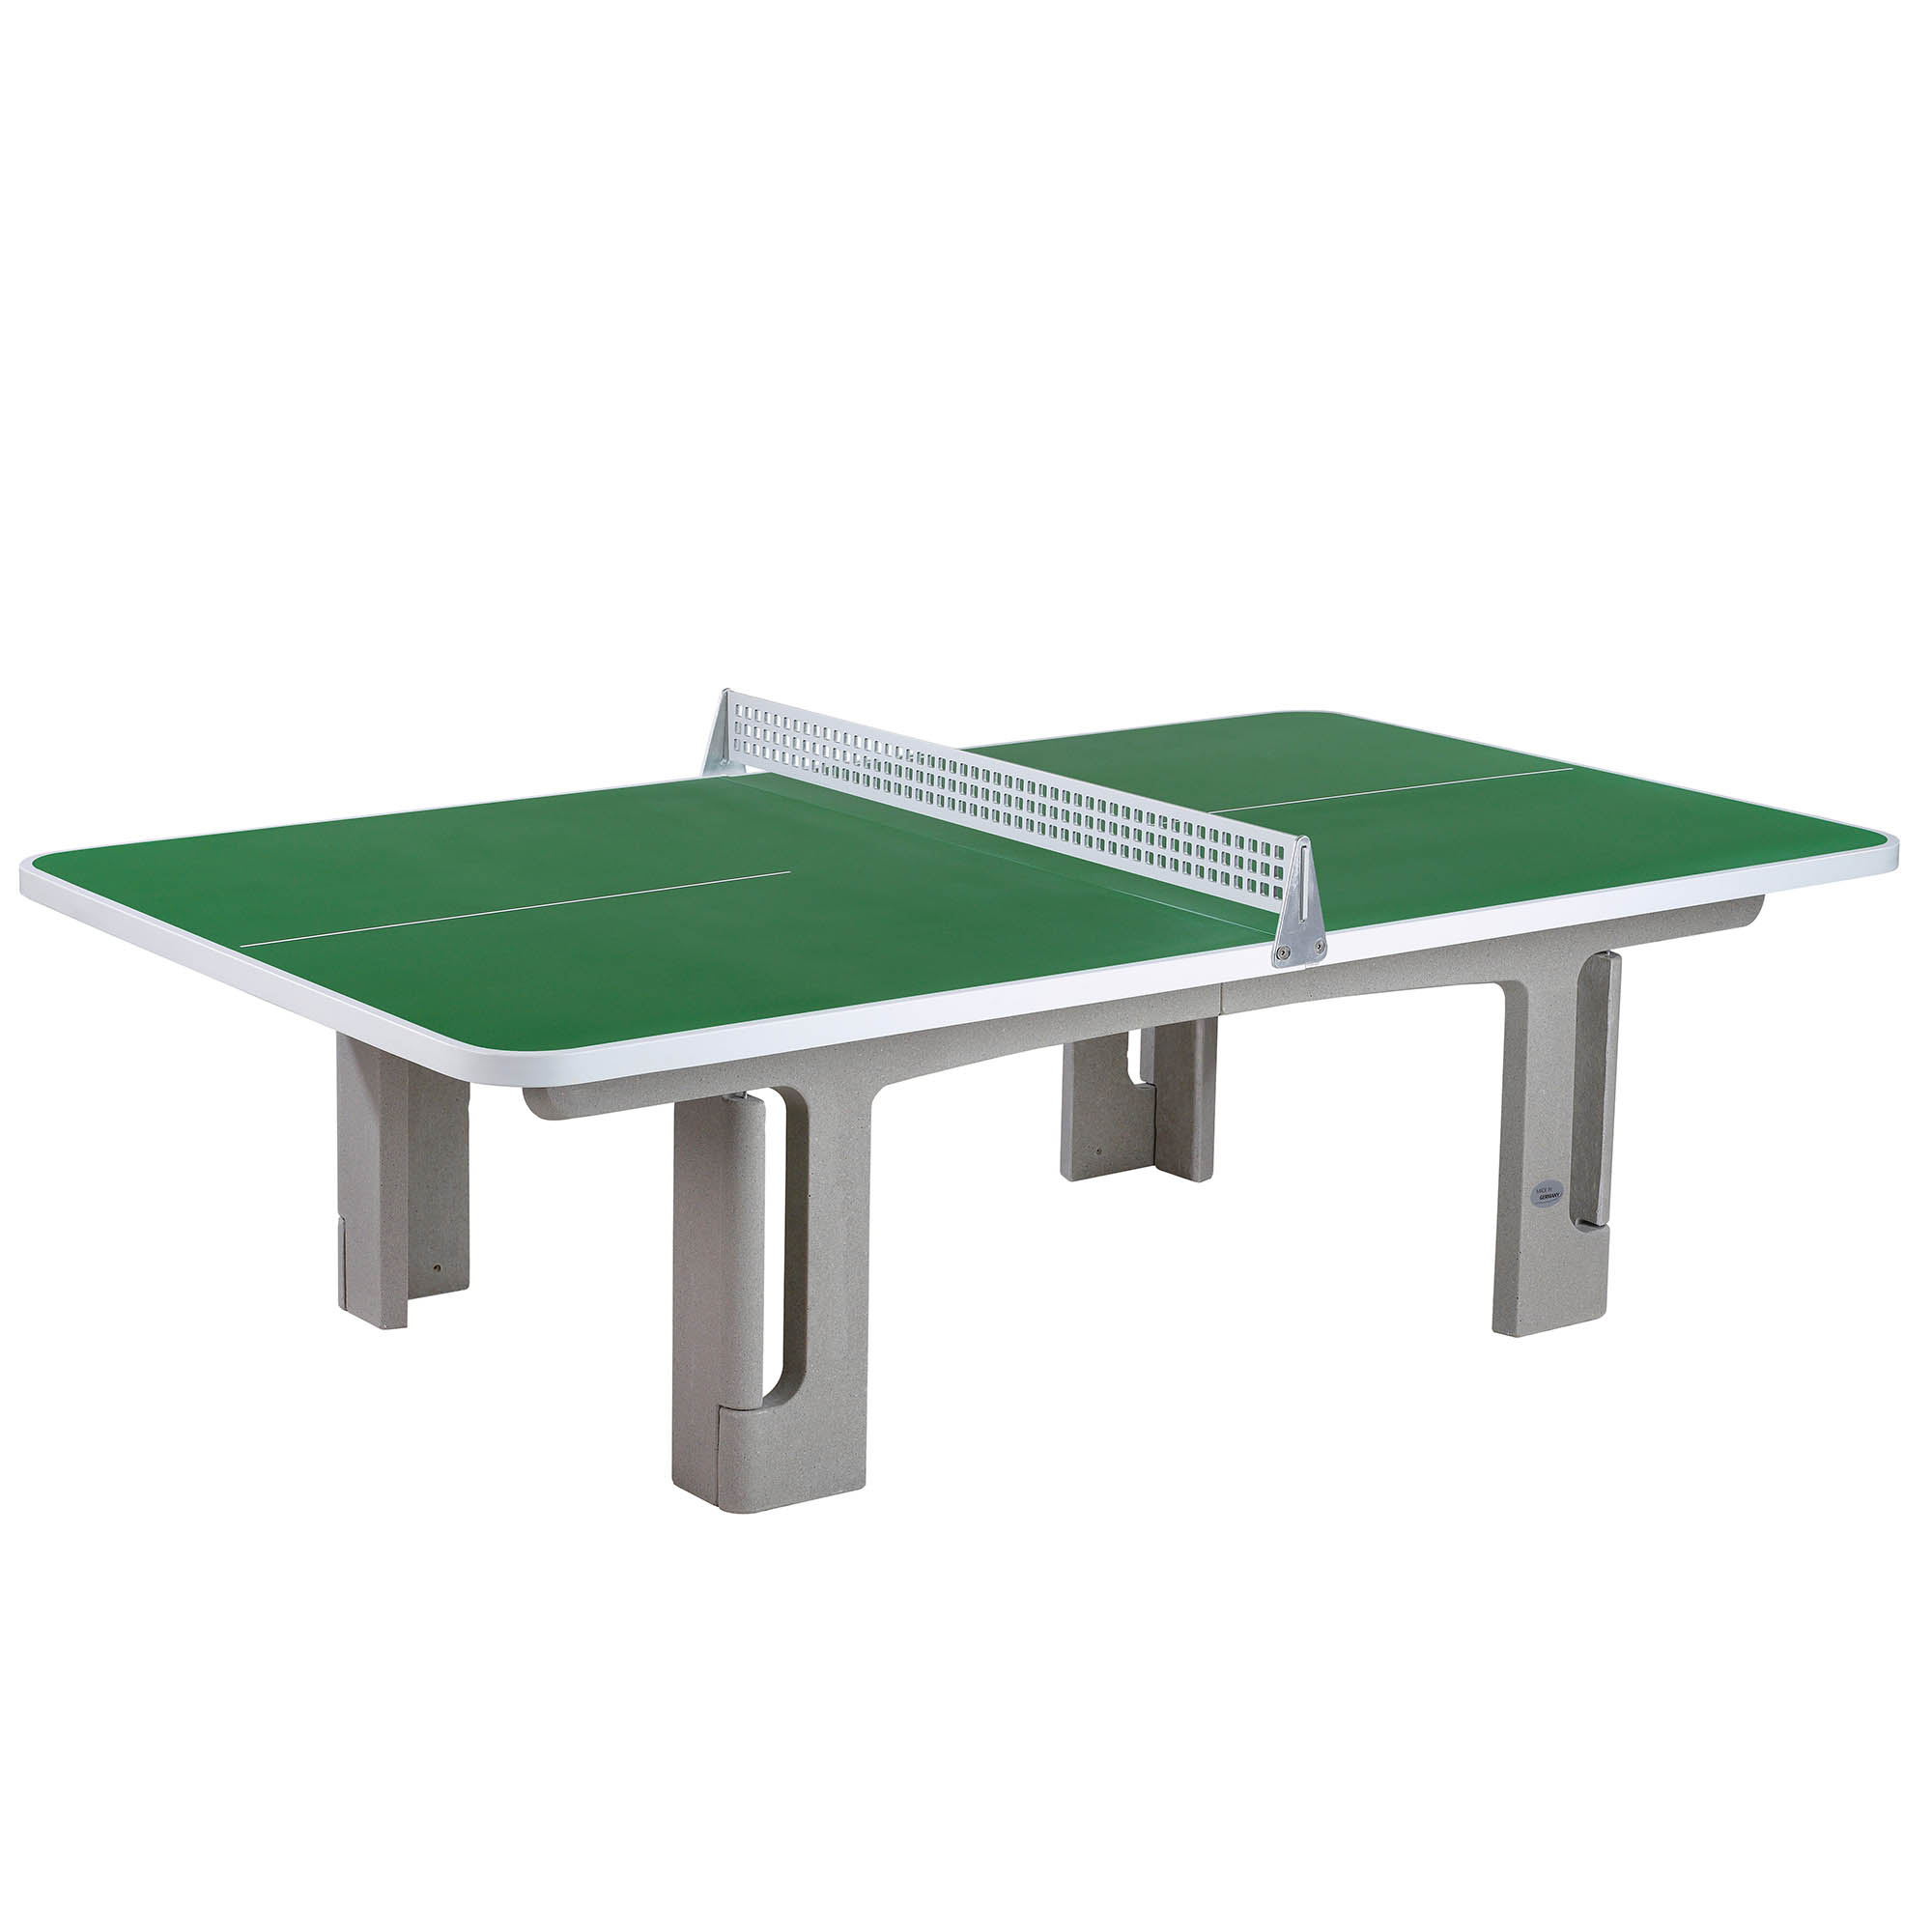 Image of Butterfly B2000 Standard Concrete Table 30SQ Table Tennis Table - Green